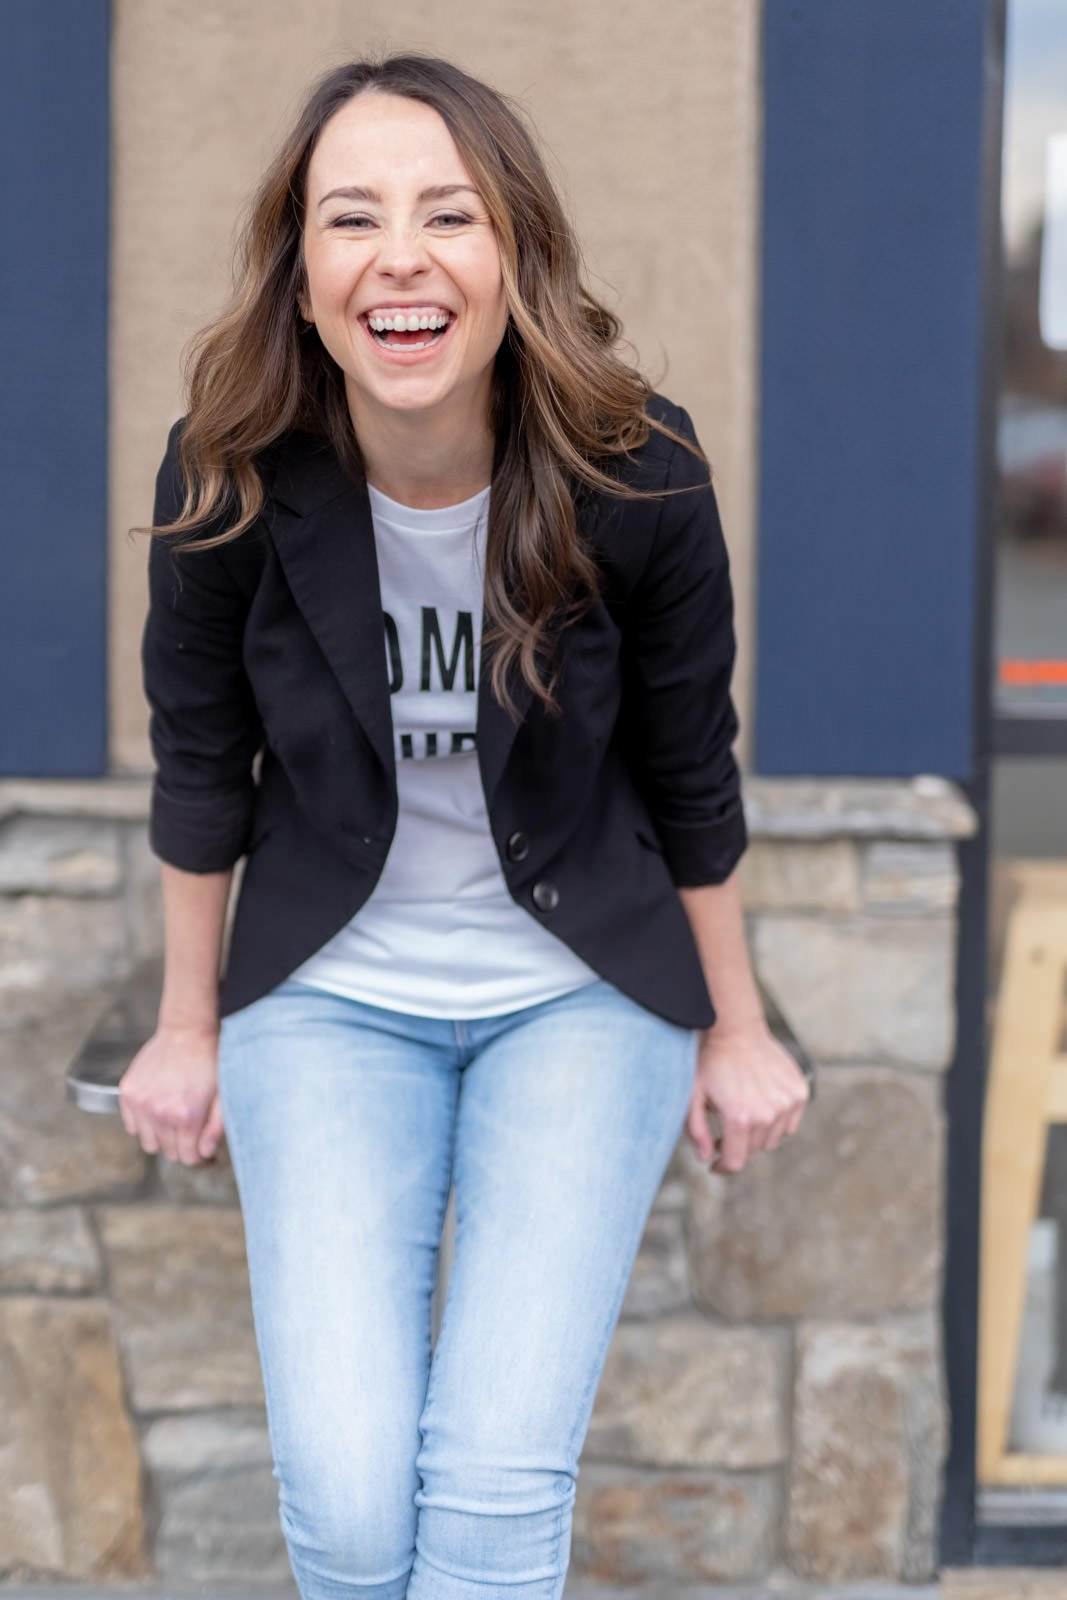 woman leaning forward laughing for personal branding photoshoot